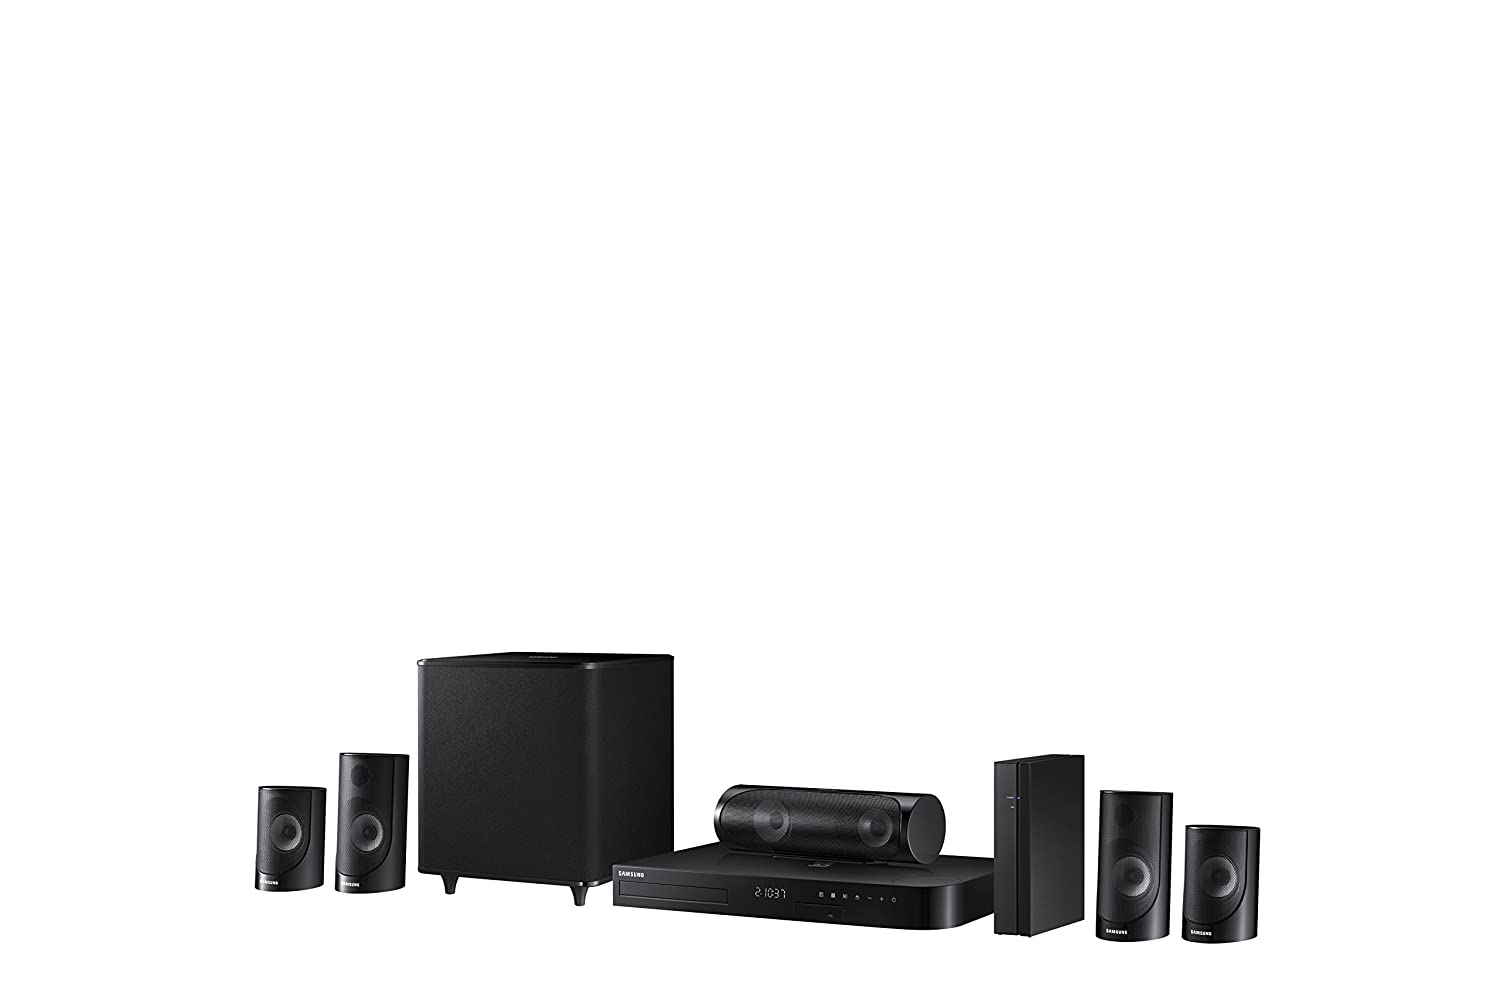 Samsung Ht J5500w 51 Channel 1000 Watt 3d Blu Ray Home How To Hook Up Surround Sound All About Electronics Theater System 2015 Model